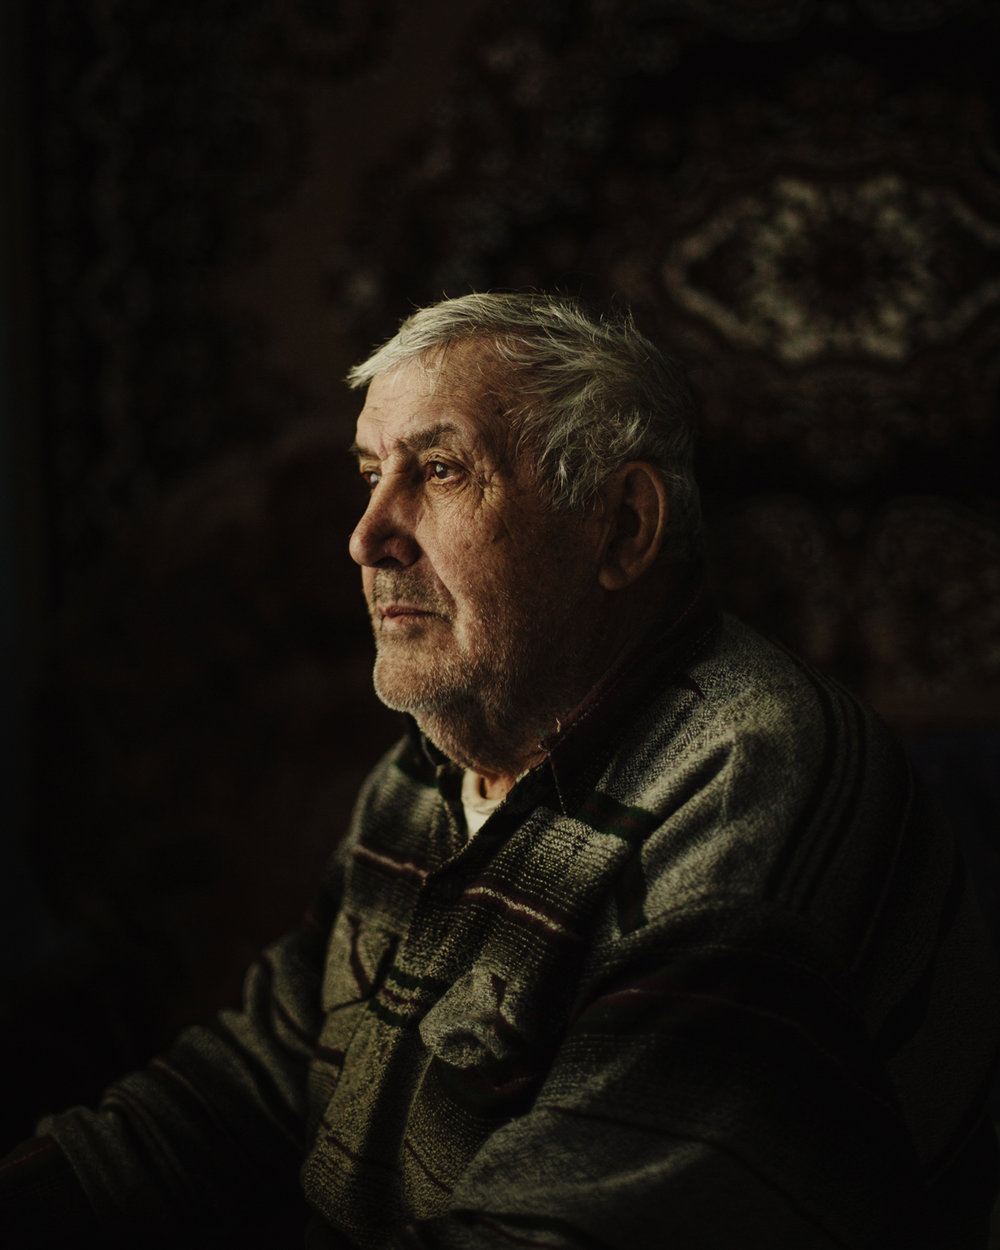 Avdarma - Ivan Vladimirovic Angelov is 80 years old, he's a survivor from the 1946 famin, he was considered dead until being saved by his aunt.